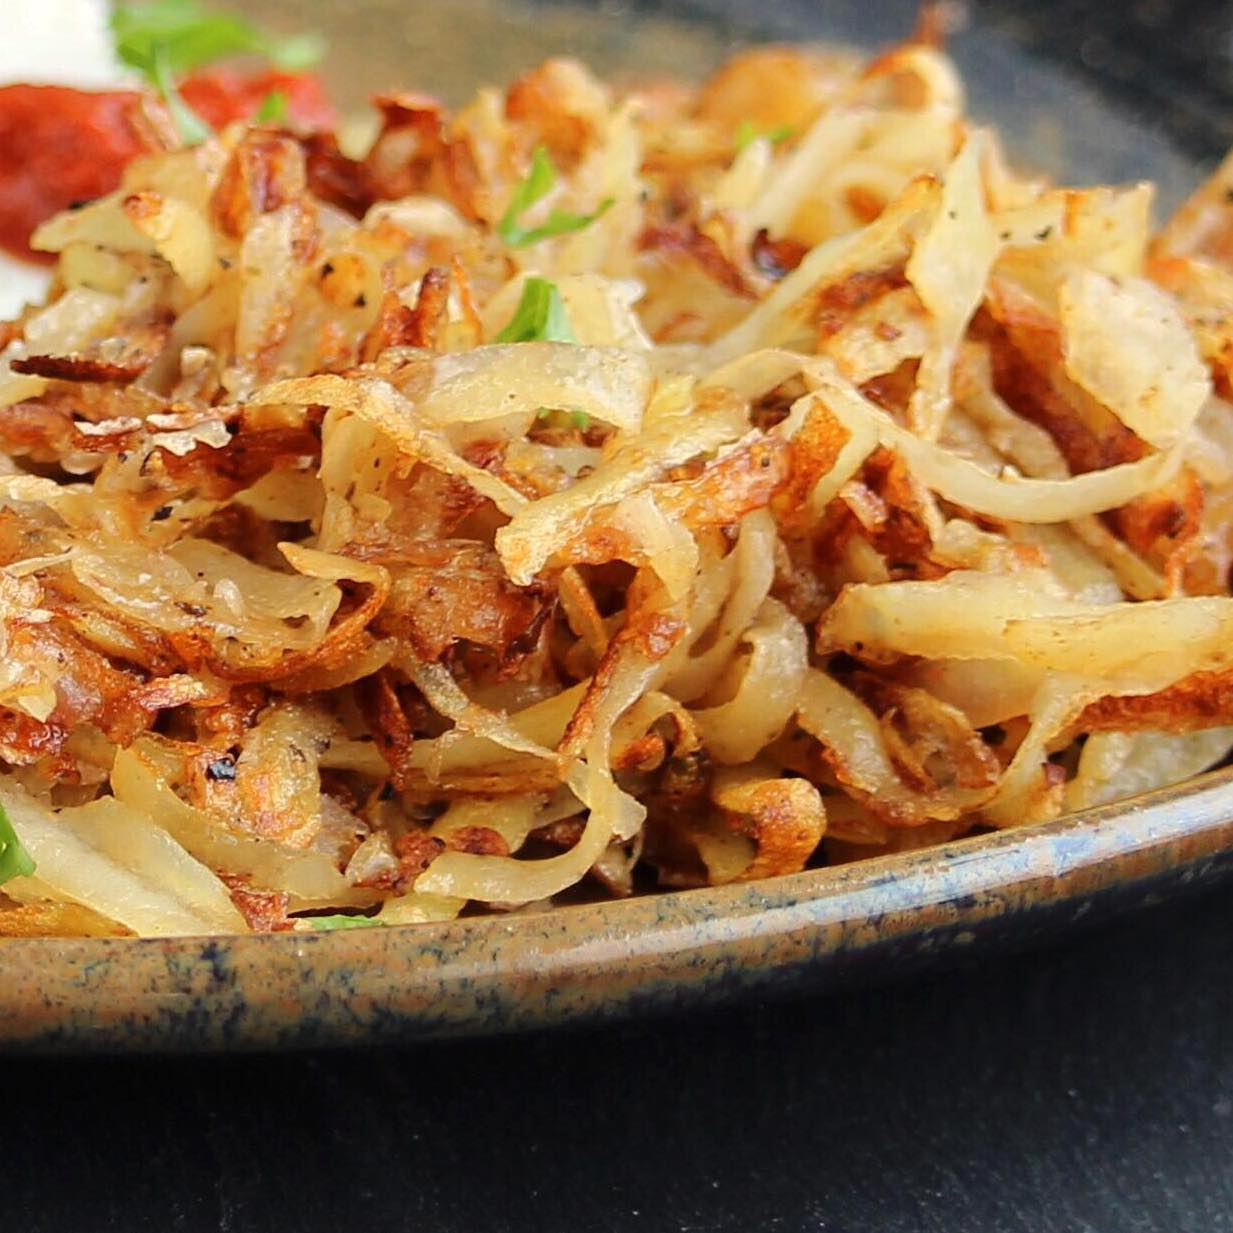 hash browns on a place